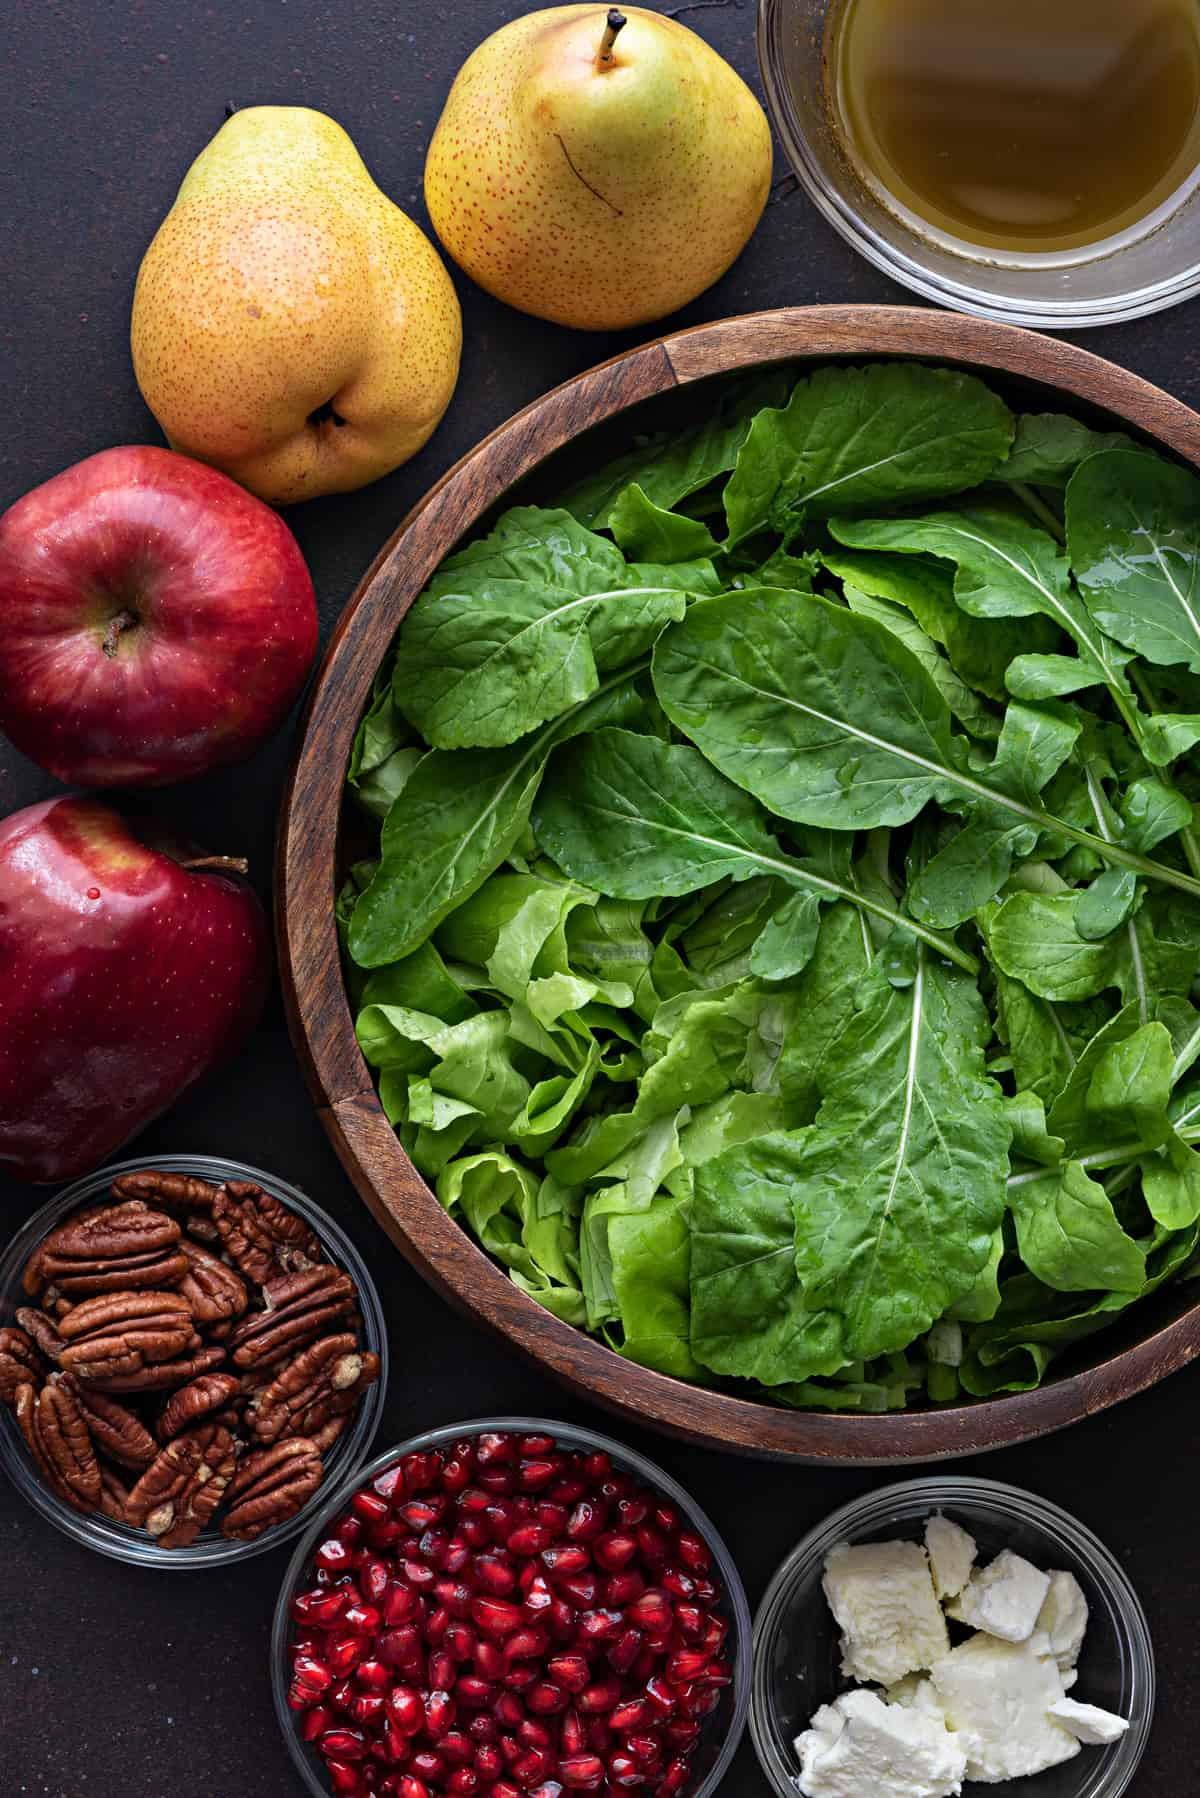 fresh spinach and rocket mix in a wooden bowl with fall salad mis en place surrounding it